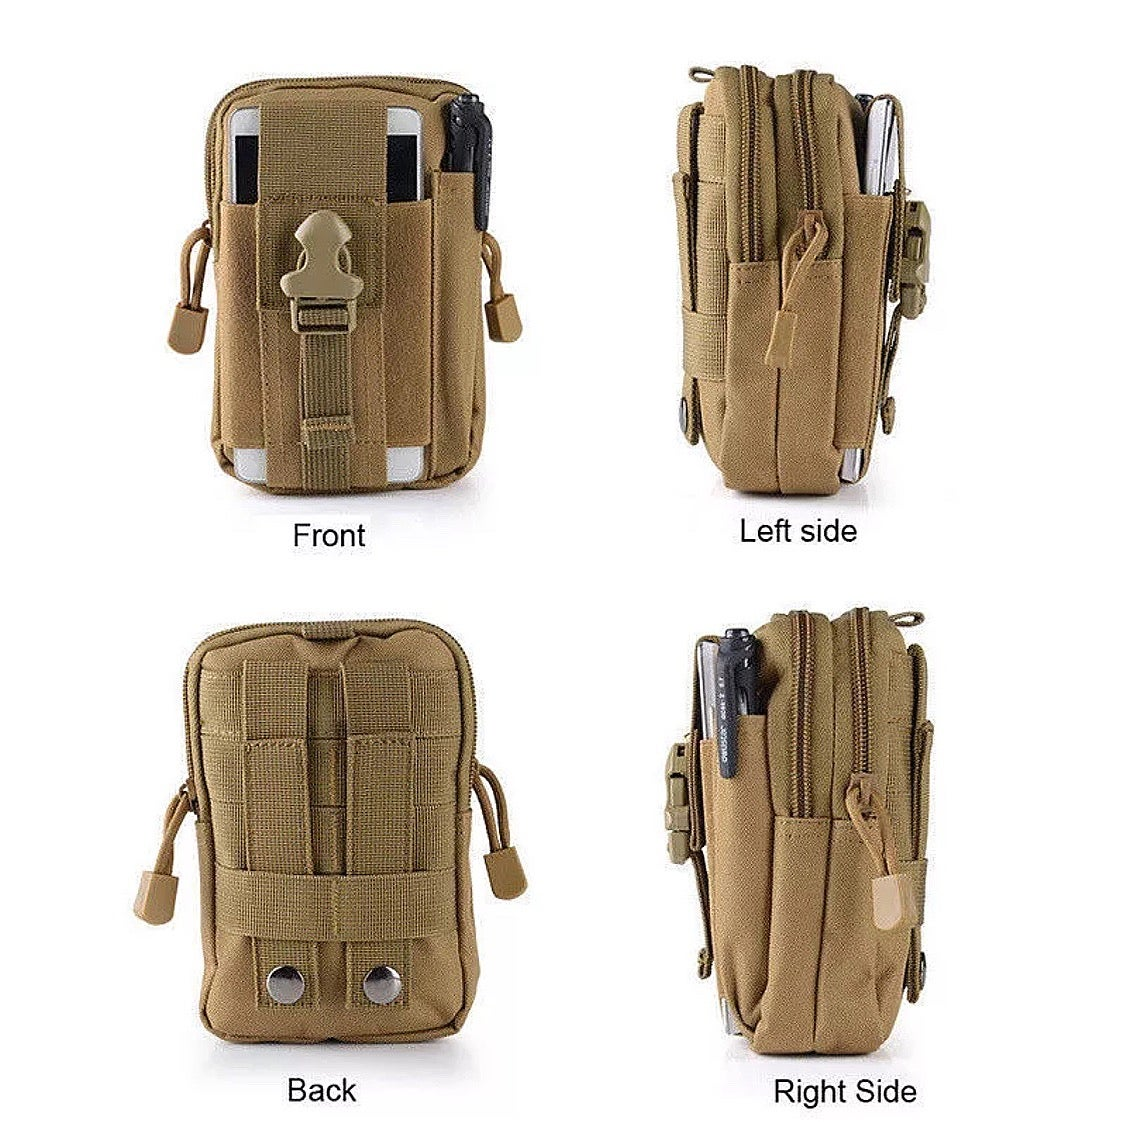 Image of KMP 'OITF' Tactical Utility Pouch